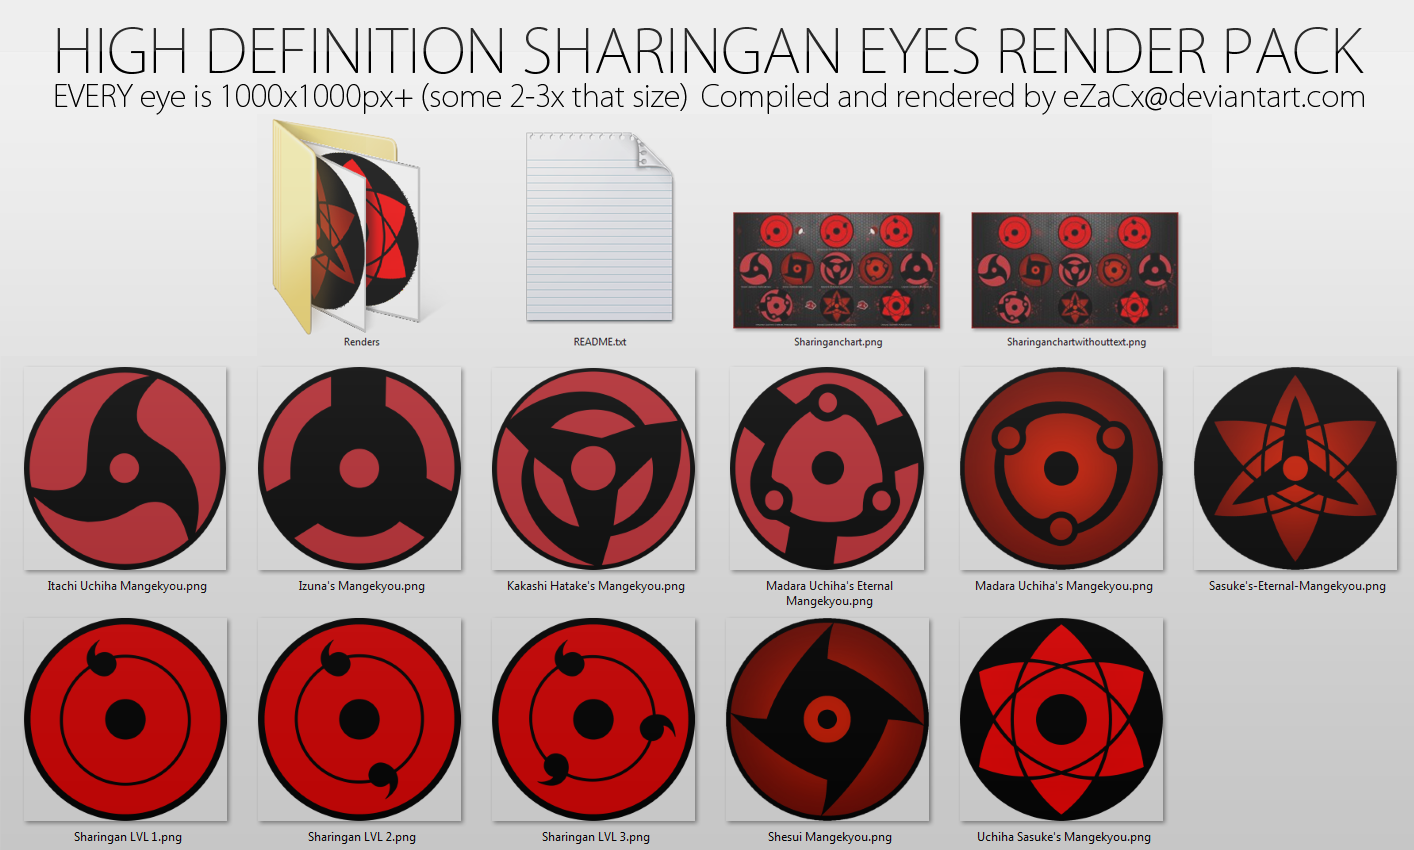 Sharingan eyes render pack